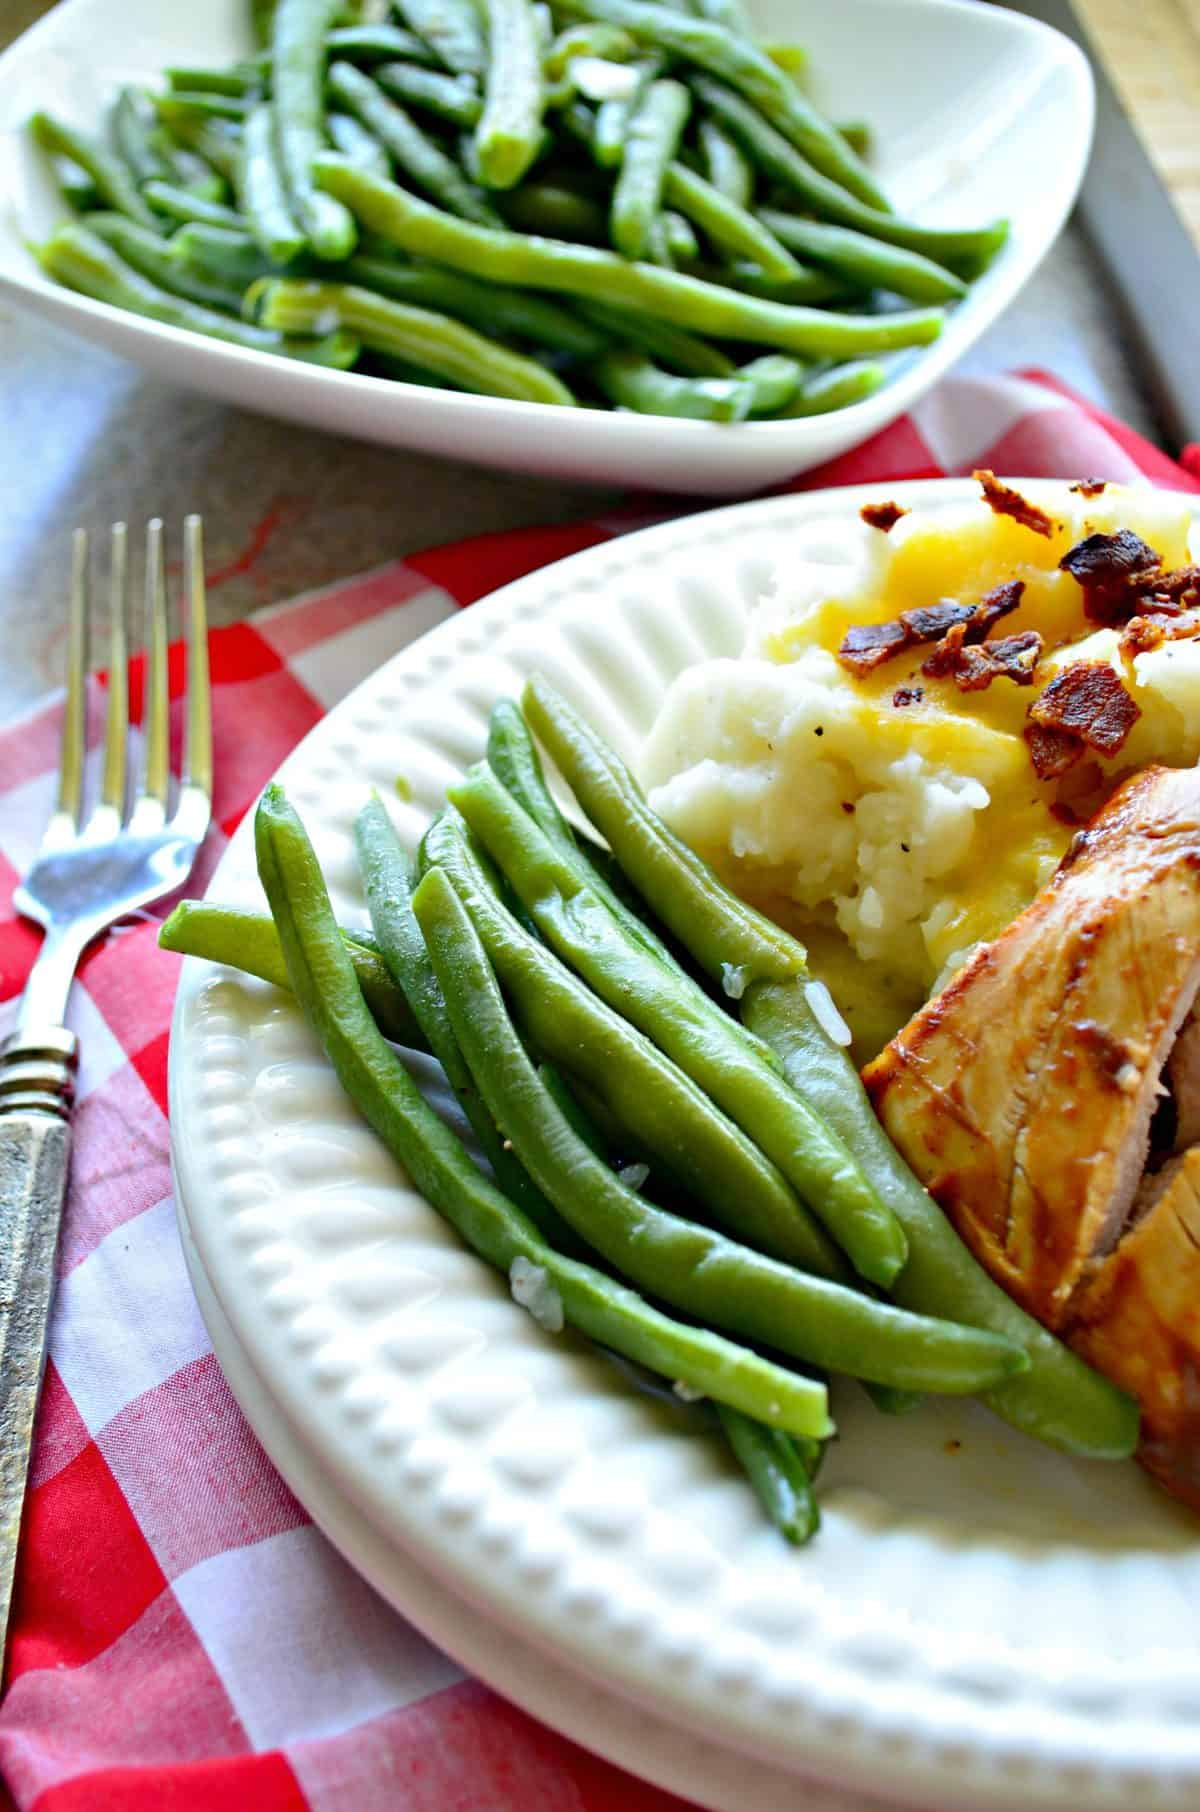 closeup of cooked green beans on white plate with chicken and mashed potatoes next to metal fork.